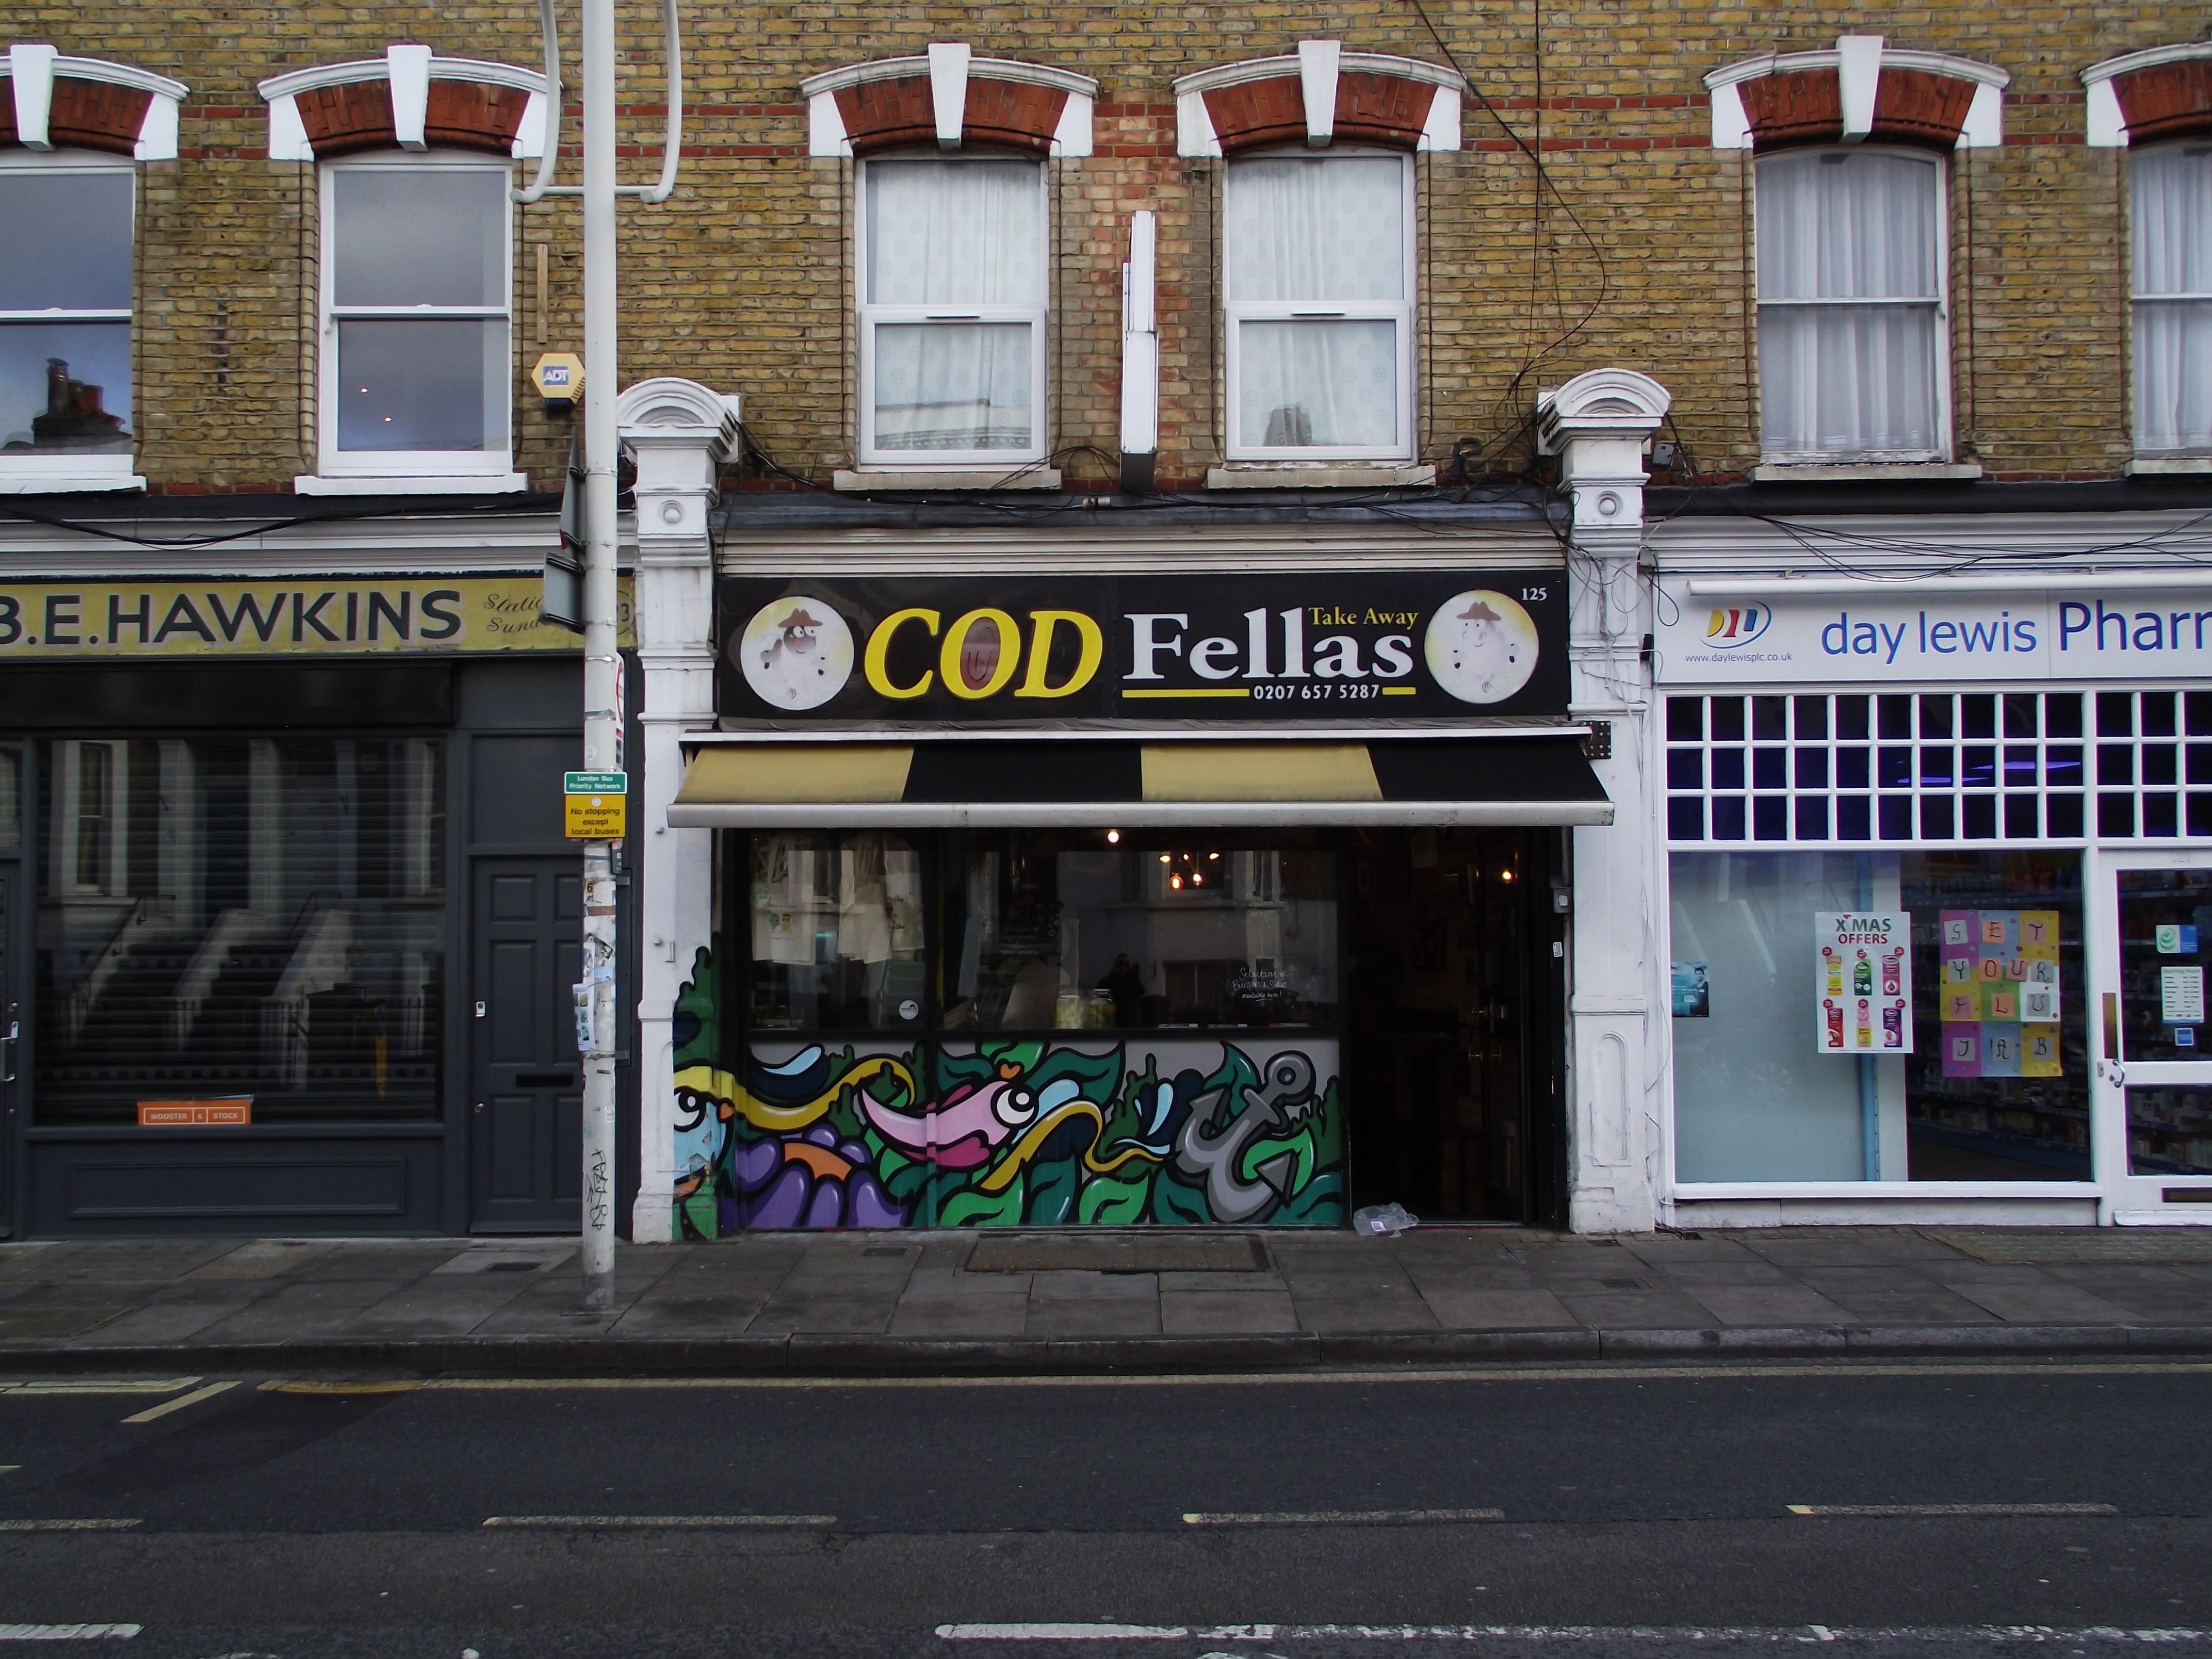 LEASE FOR SALE, Cod Fellas, Peckham, South East London. Ref. 1740